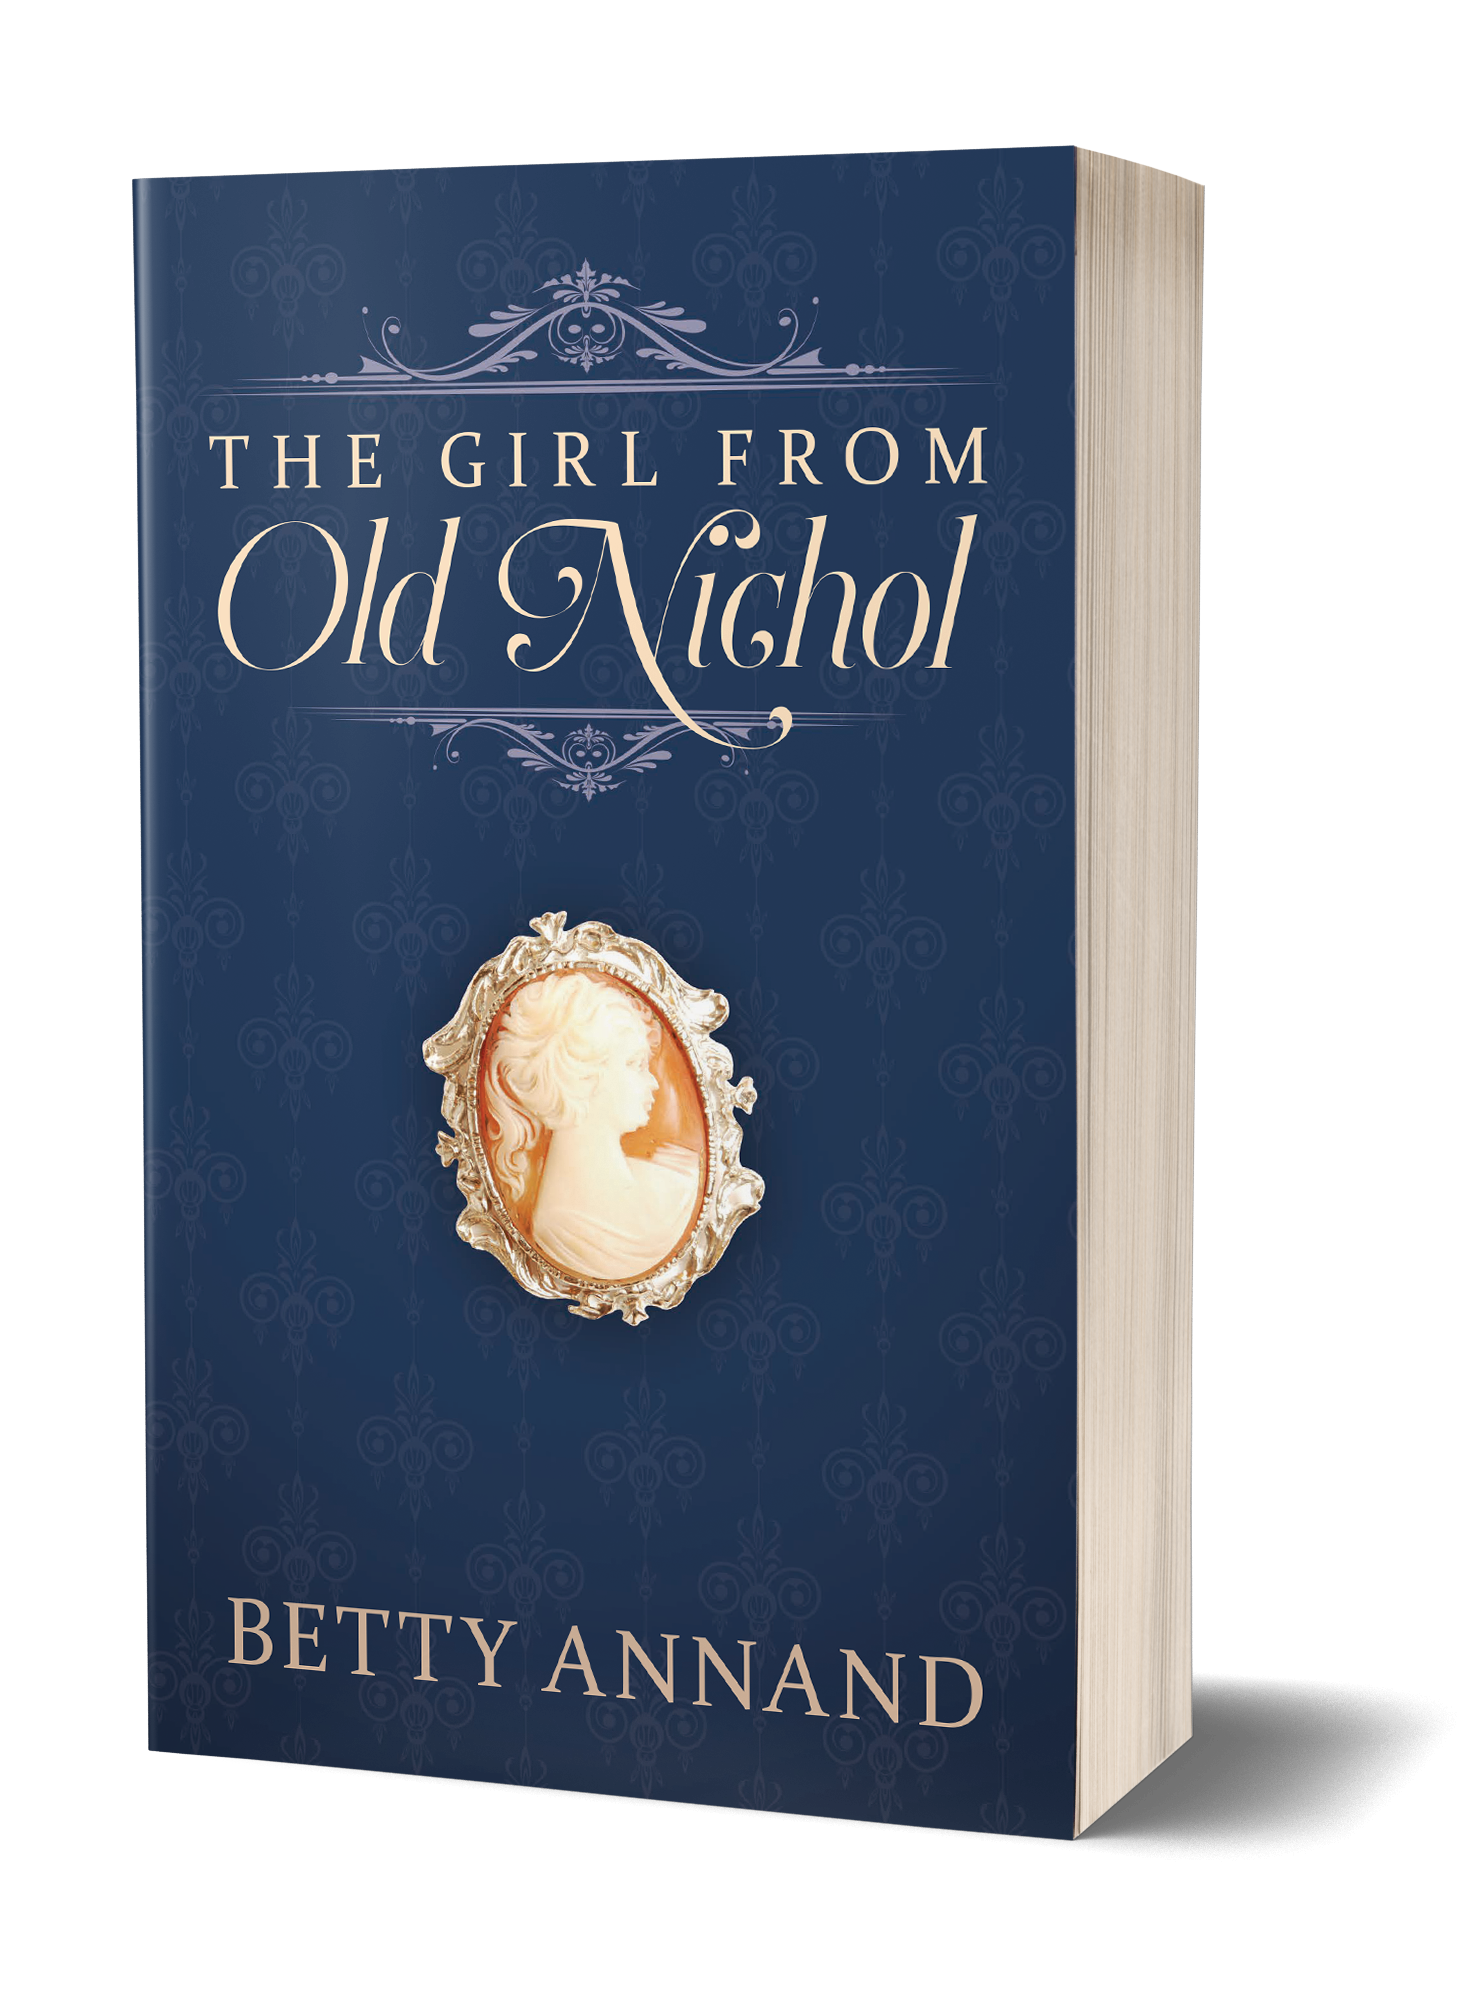 The Girl from Old Nichol book cover, blue background with a woman's brooch on the front